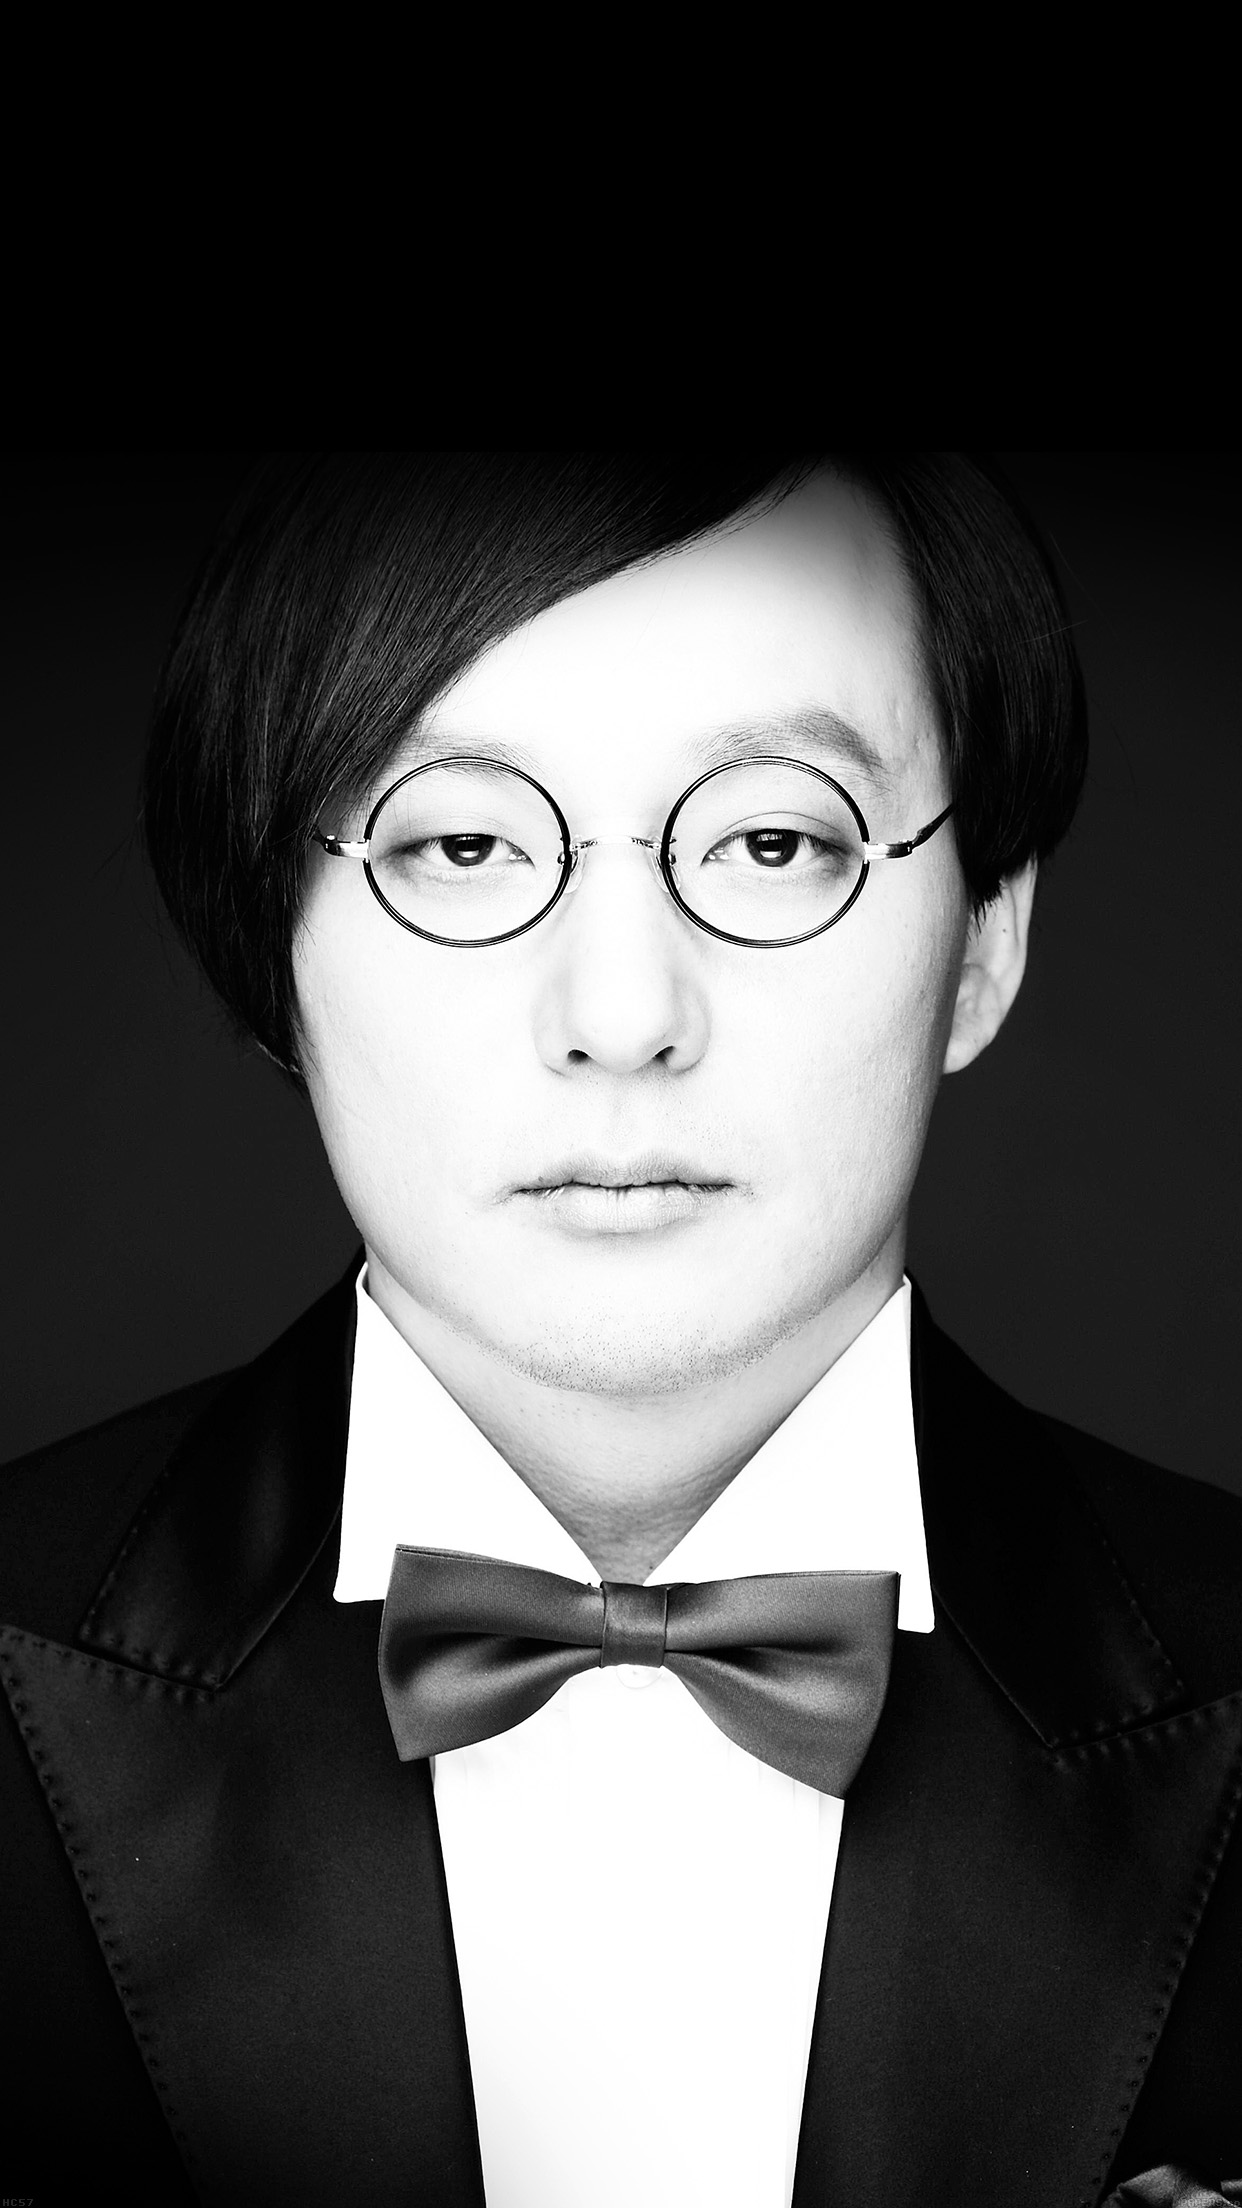 Shinhaechul Mawang Rip Music Rock Android wallpaper